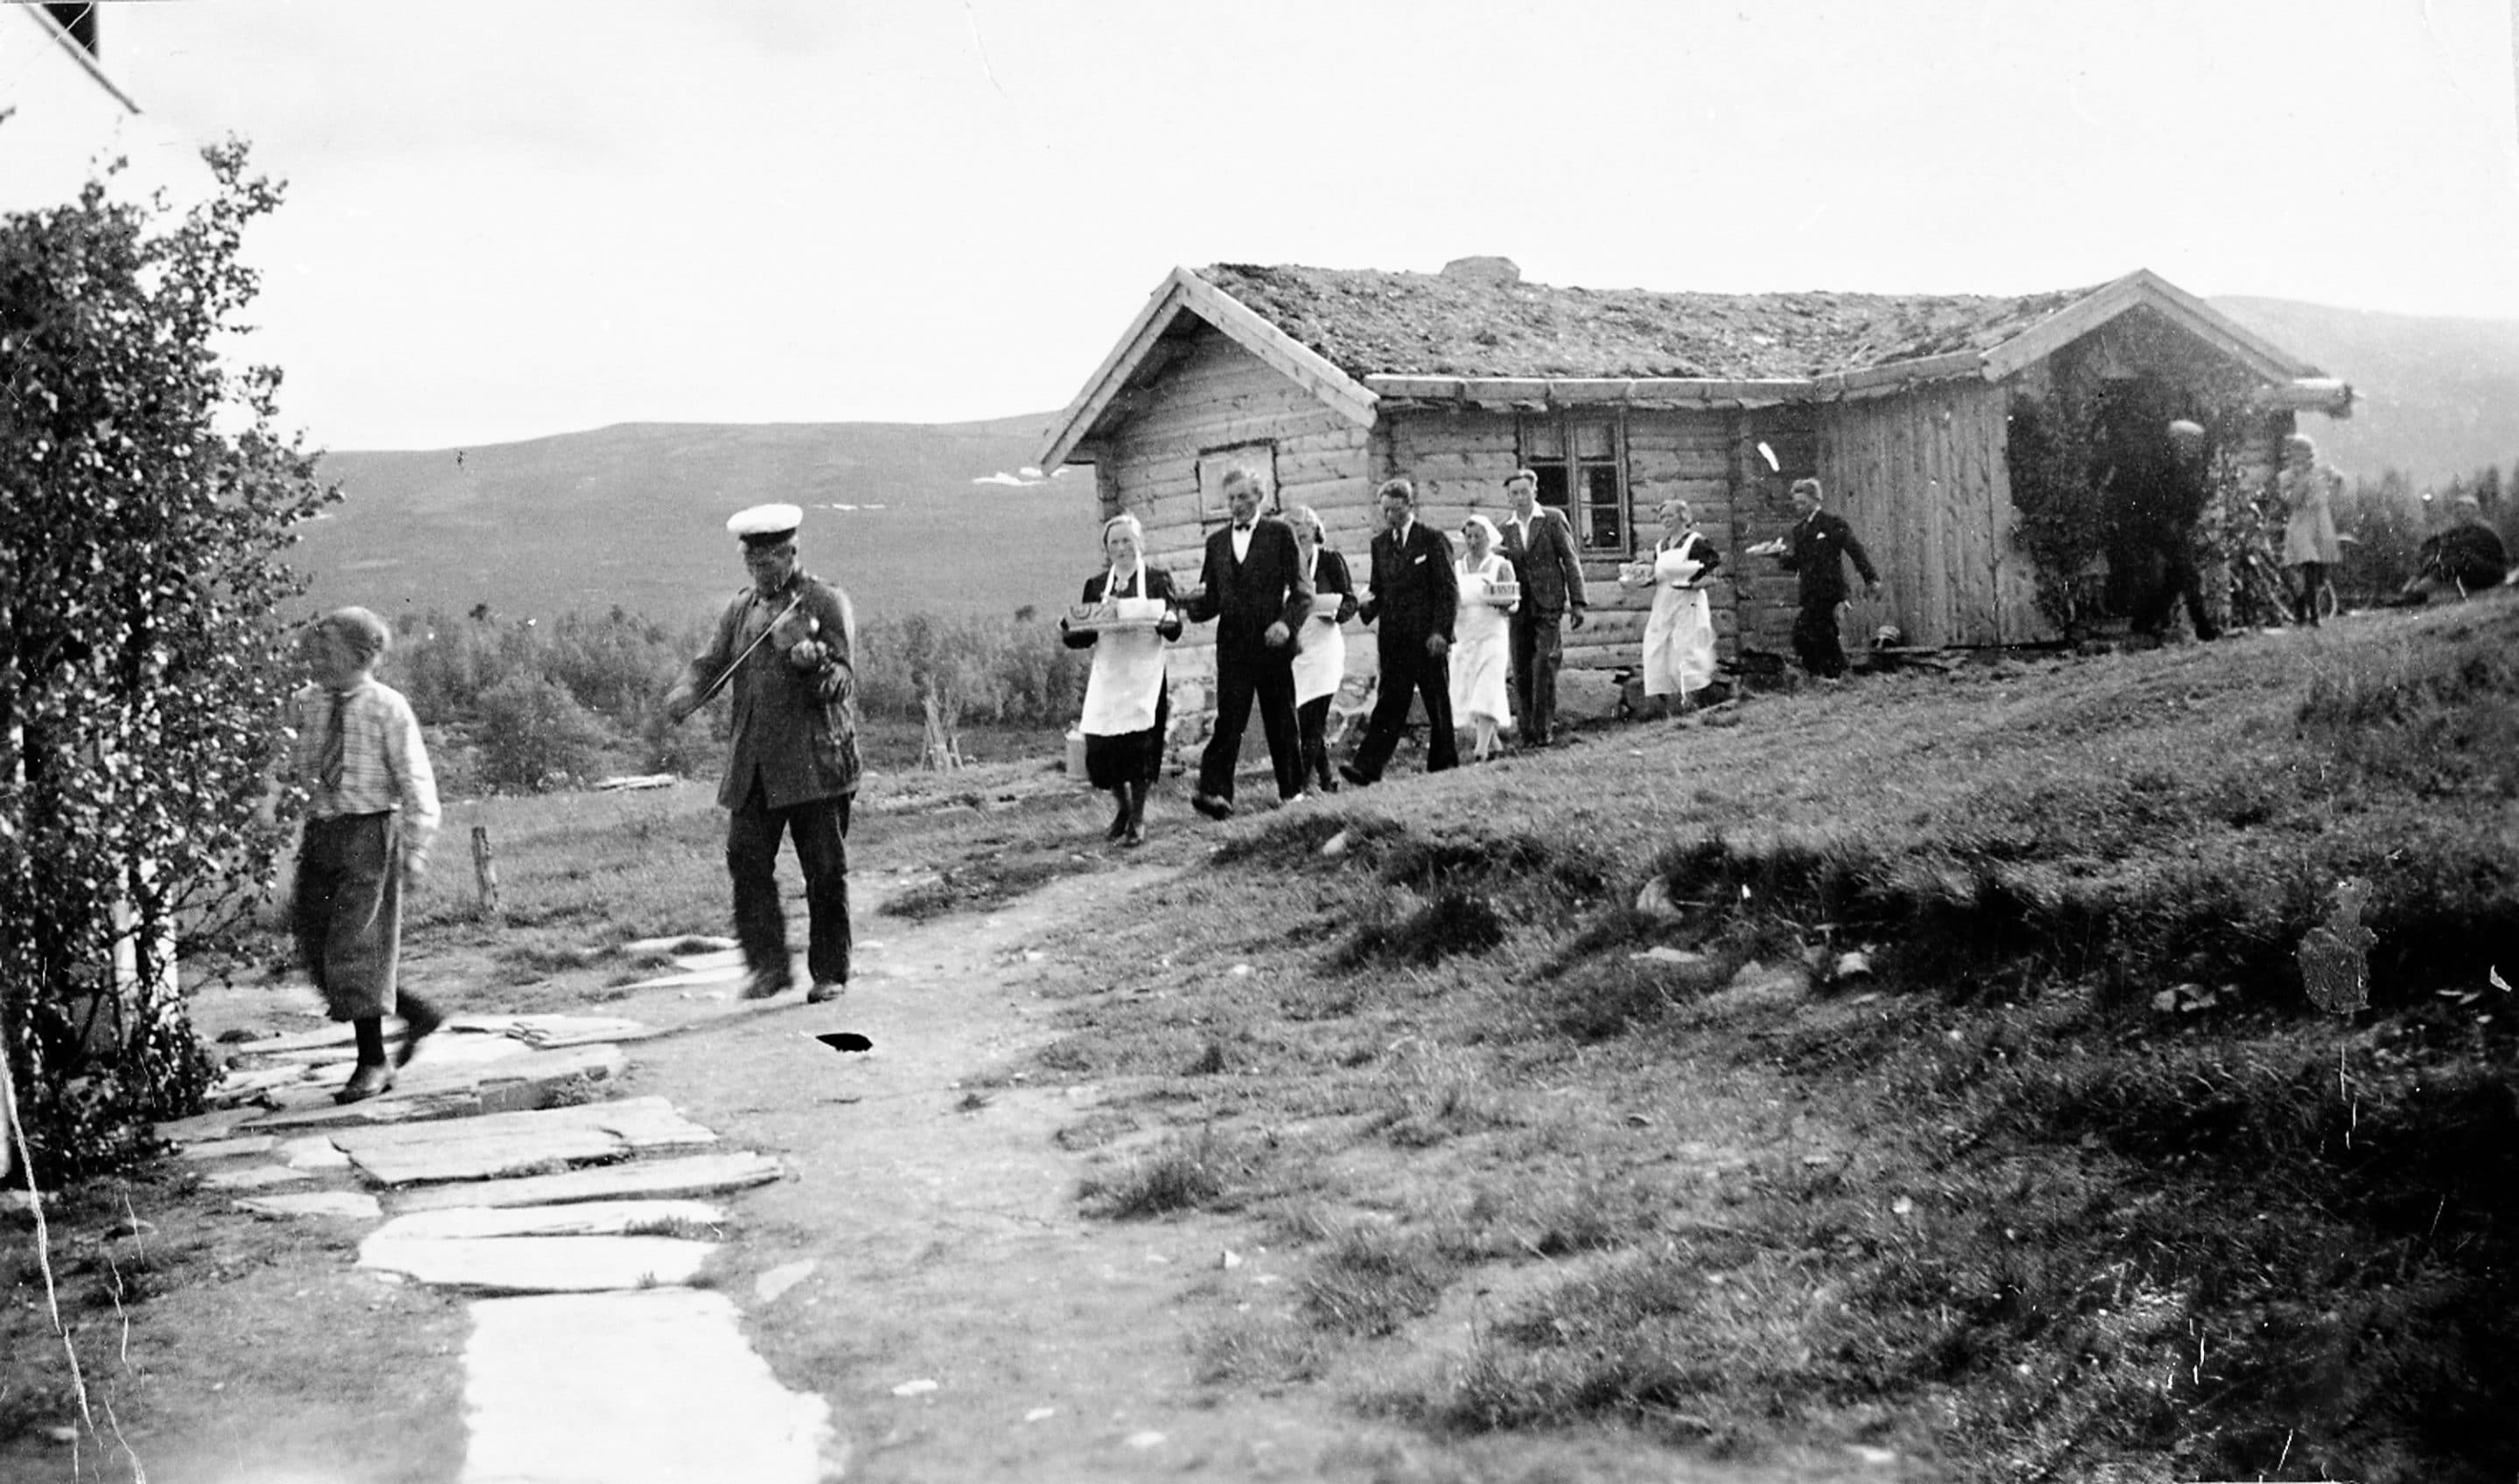 A wedding at Kvilvang Nordre farm, Tufsingdalen, Os, Hedmark, Norway. The fiddler is leading the procession - as the porridge is brought in to hungry guests. Taken prior to 1928. | Photo: Peder J. Bredalslien - digitaltmuseum.no MINØ.024018 - public domain.